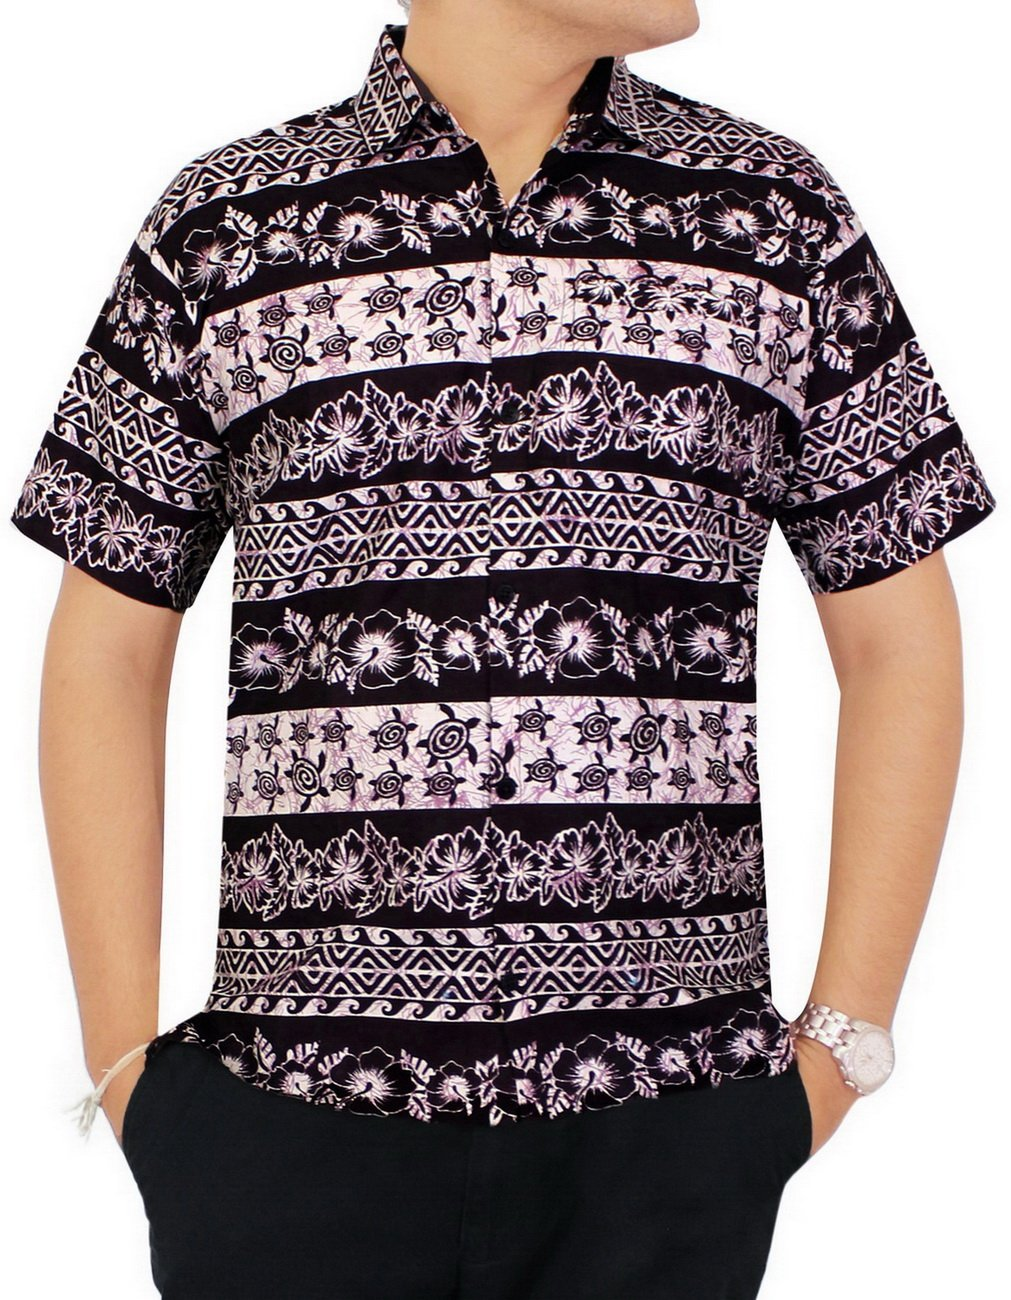 La Leela Men's Casual Button Down Short Sleeve Pocket Hawaiian Shirt Black:  *LA LEELA: Amazon.co.uk: Clothing